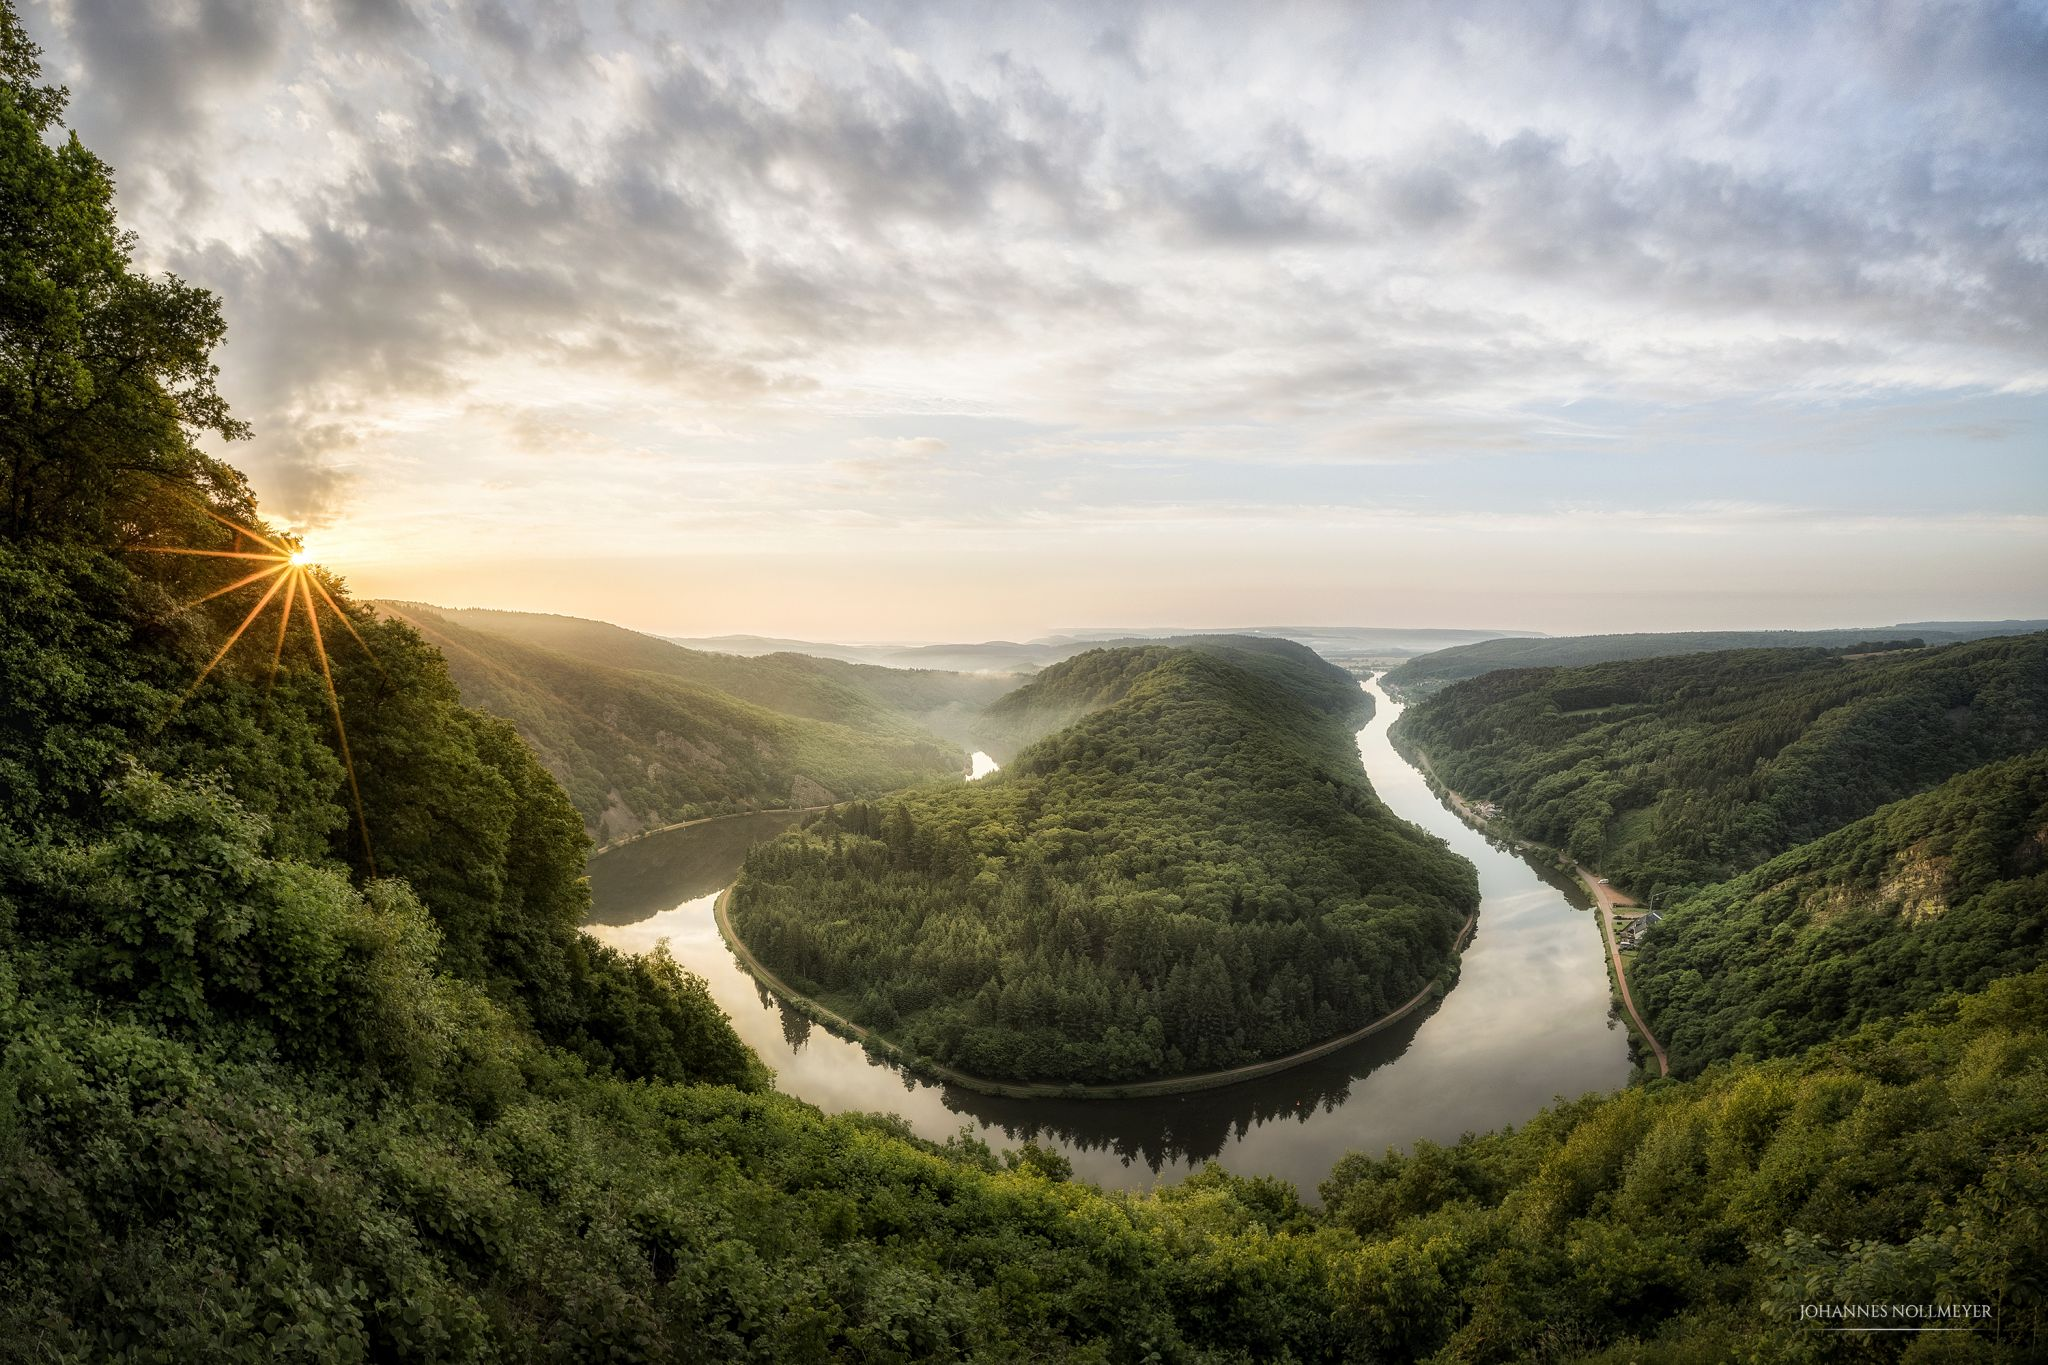 Saarschleife, Saar Loop, Germany